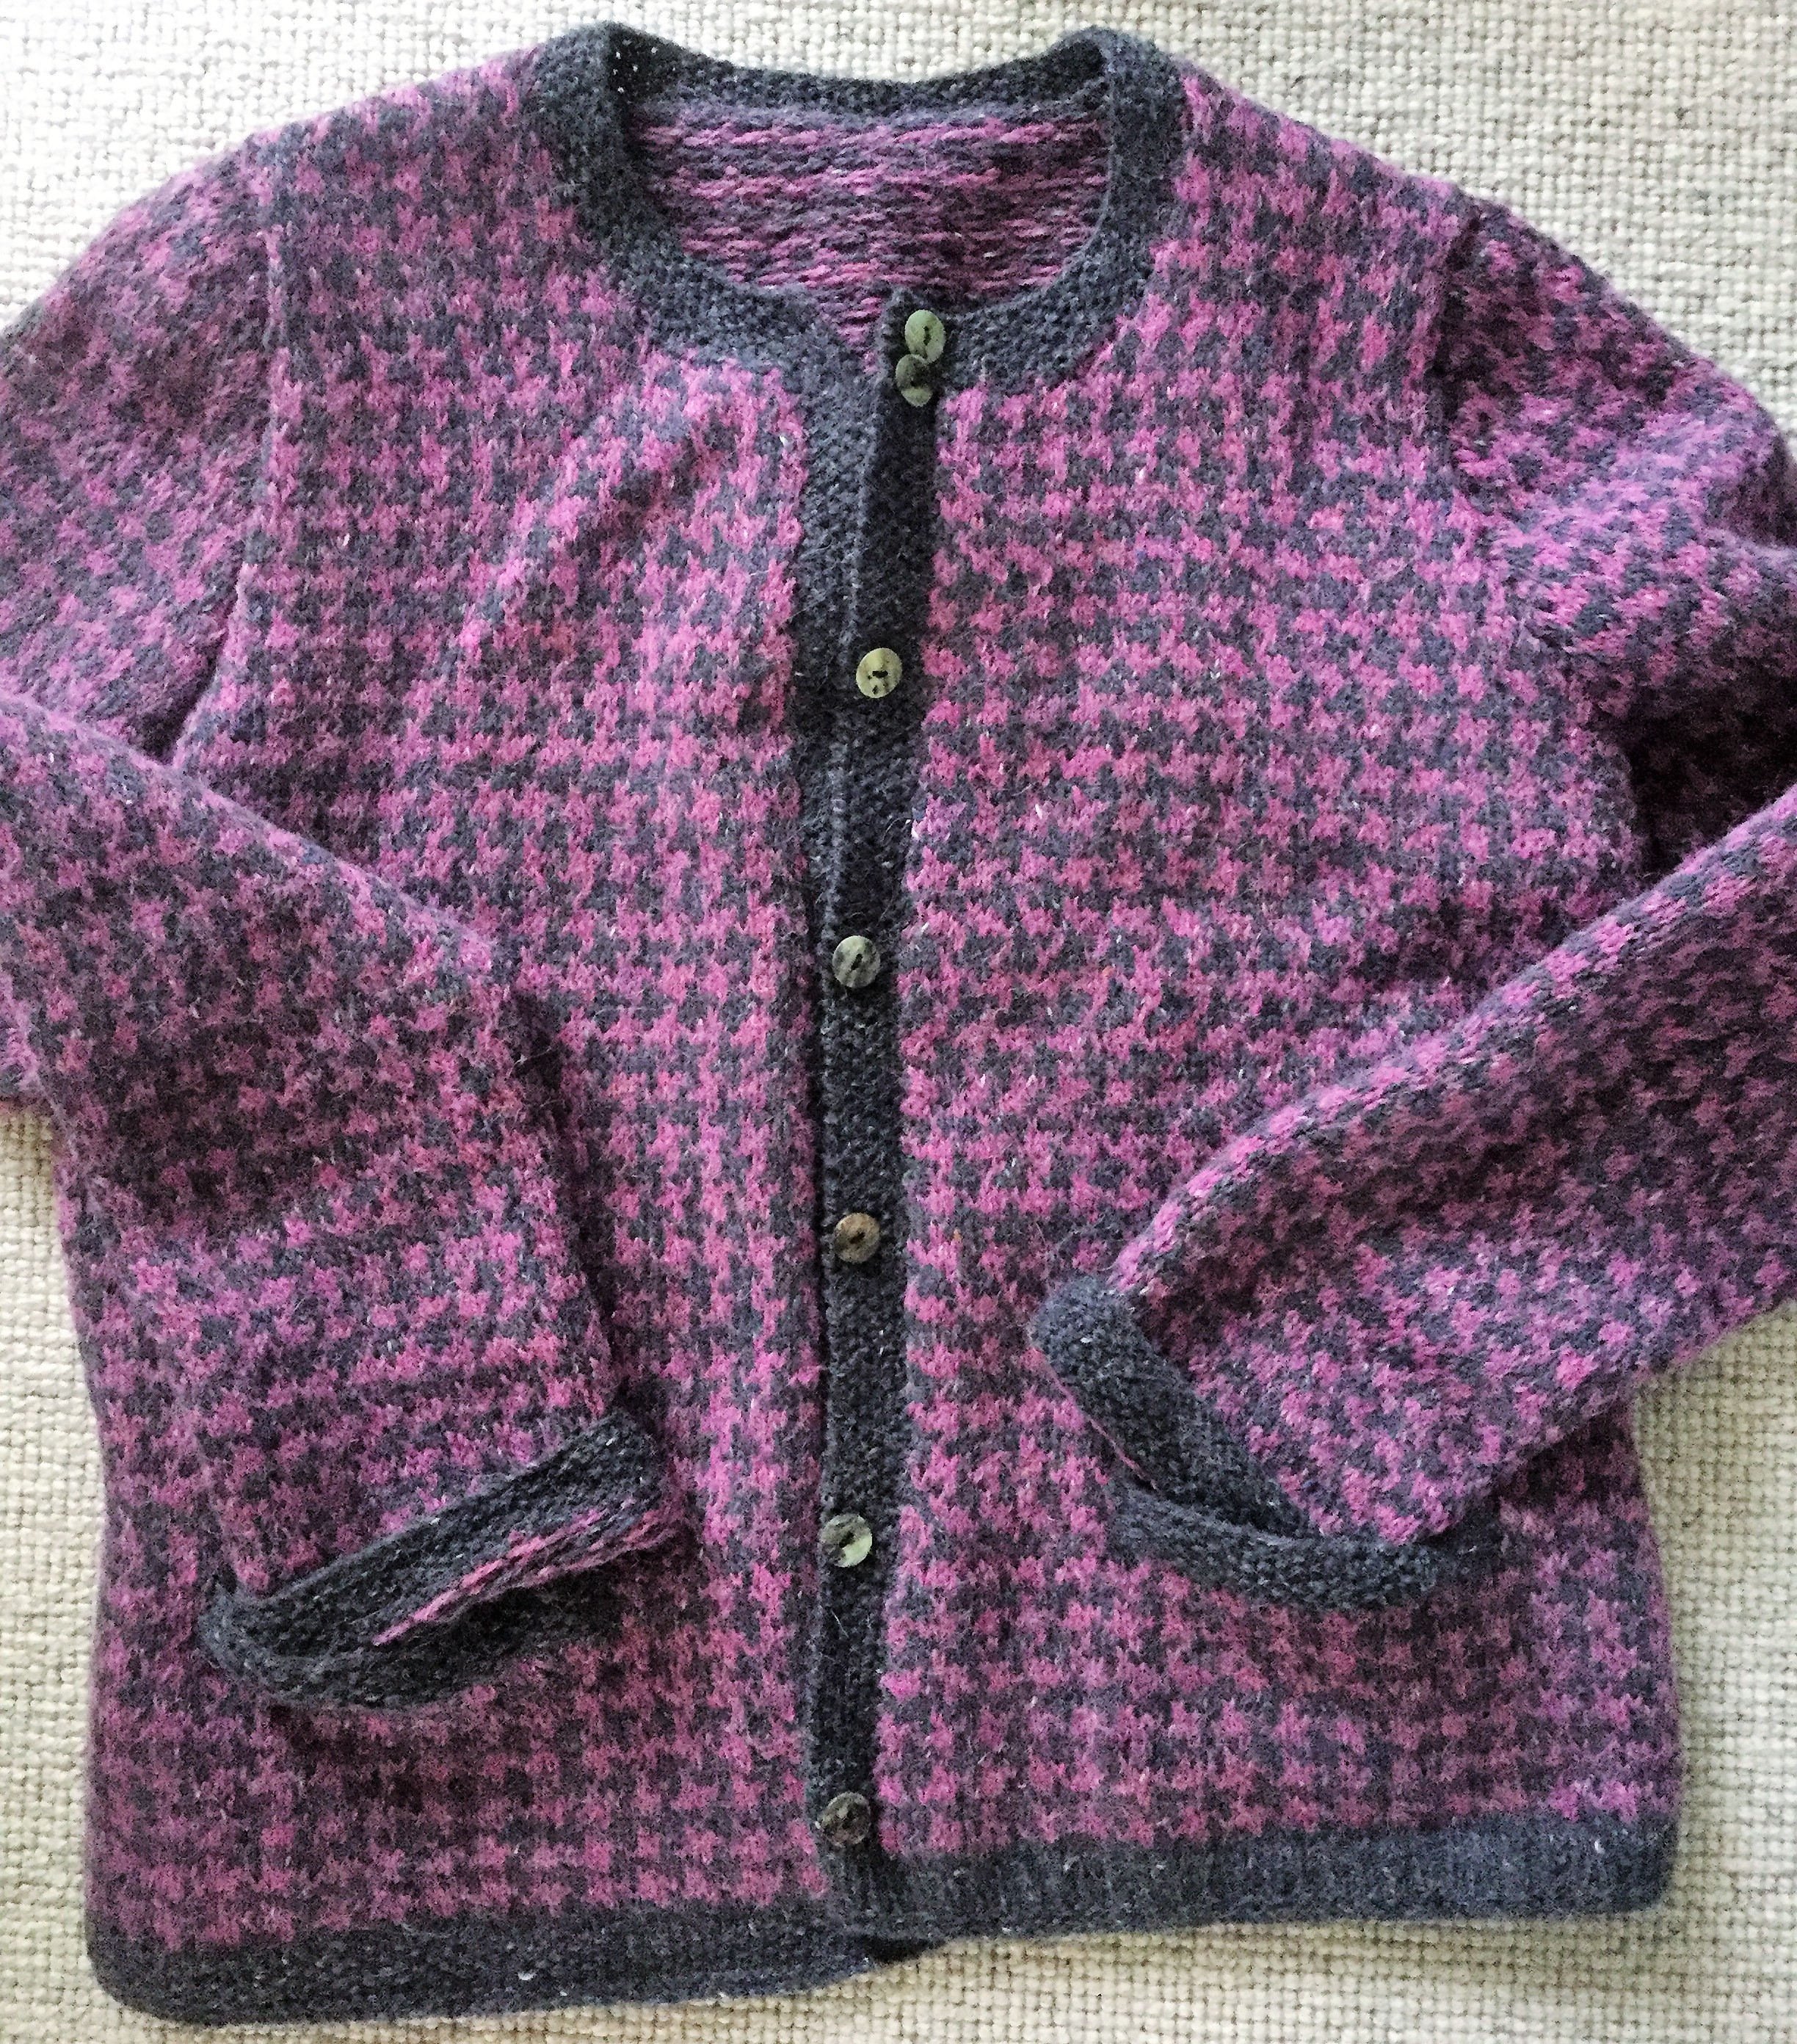 Pink and navy houndstooth handmade sweater